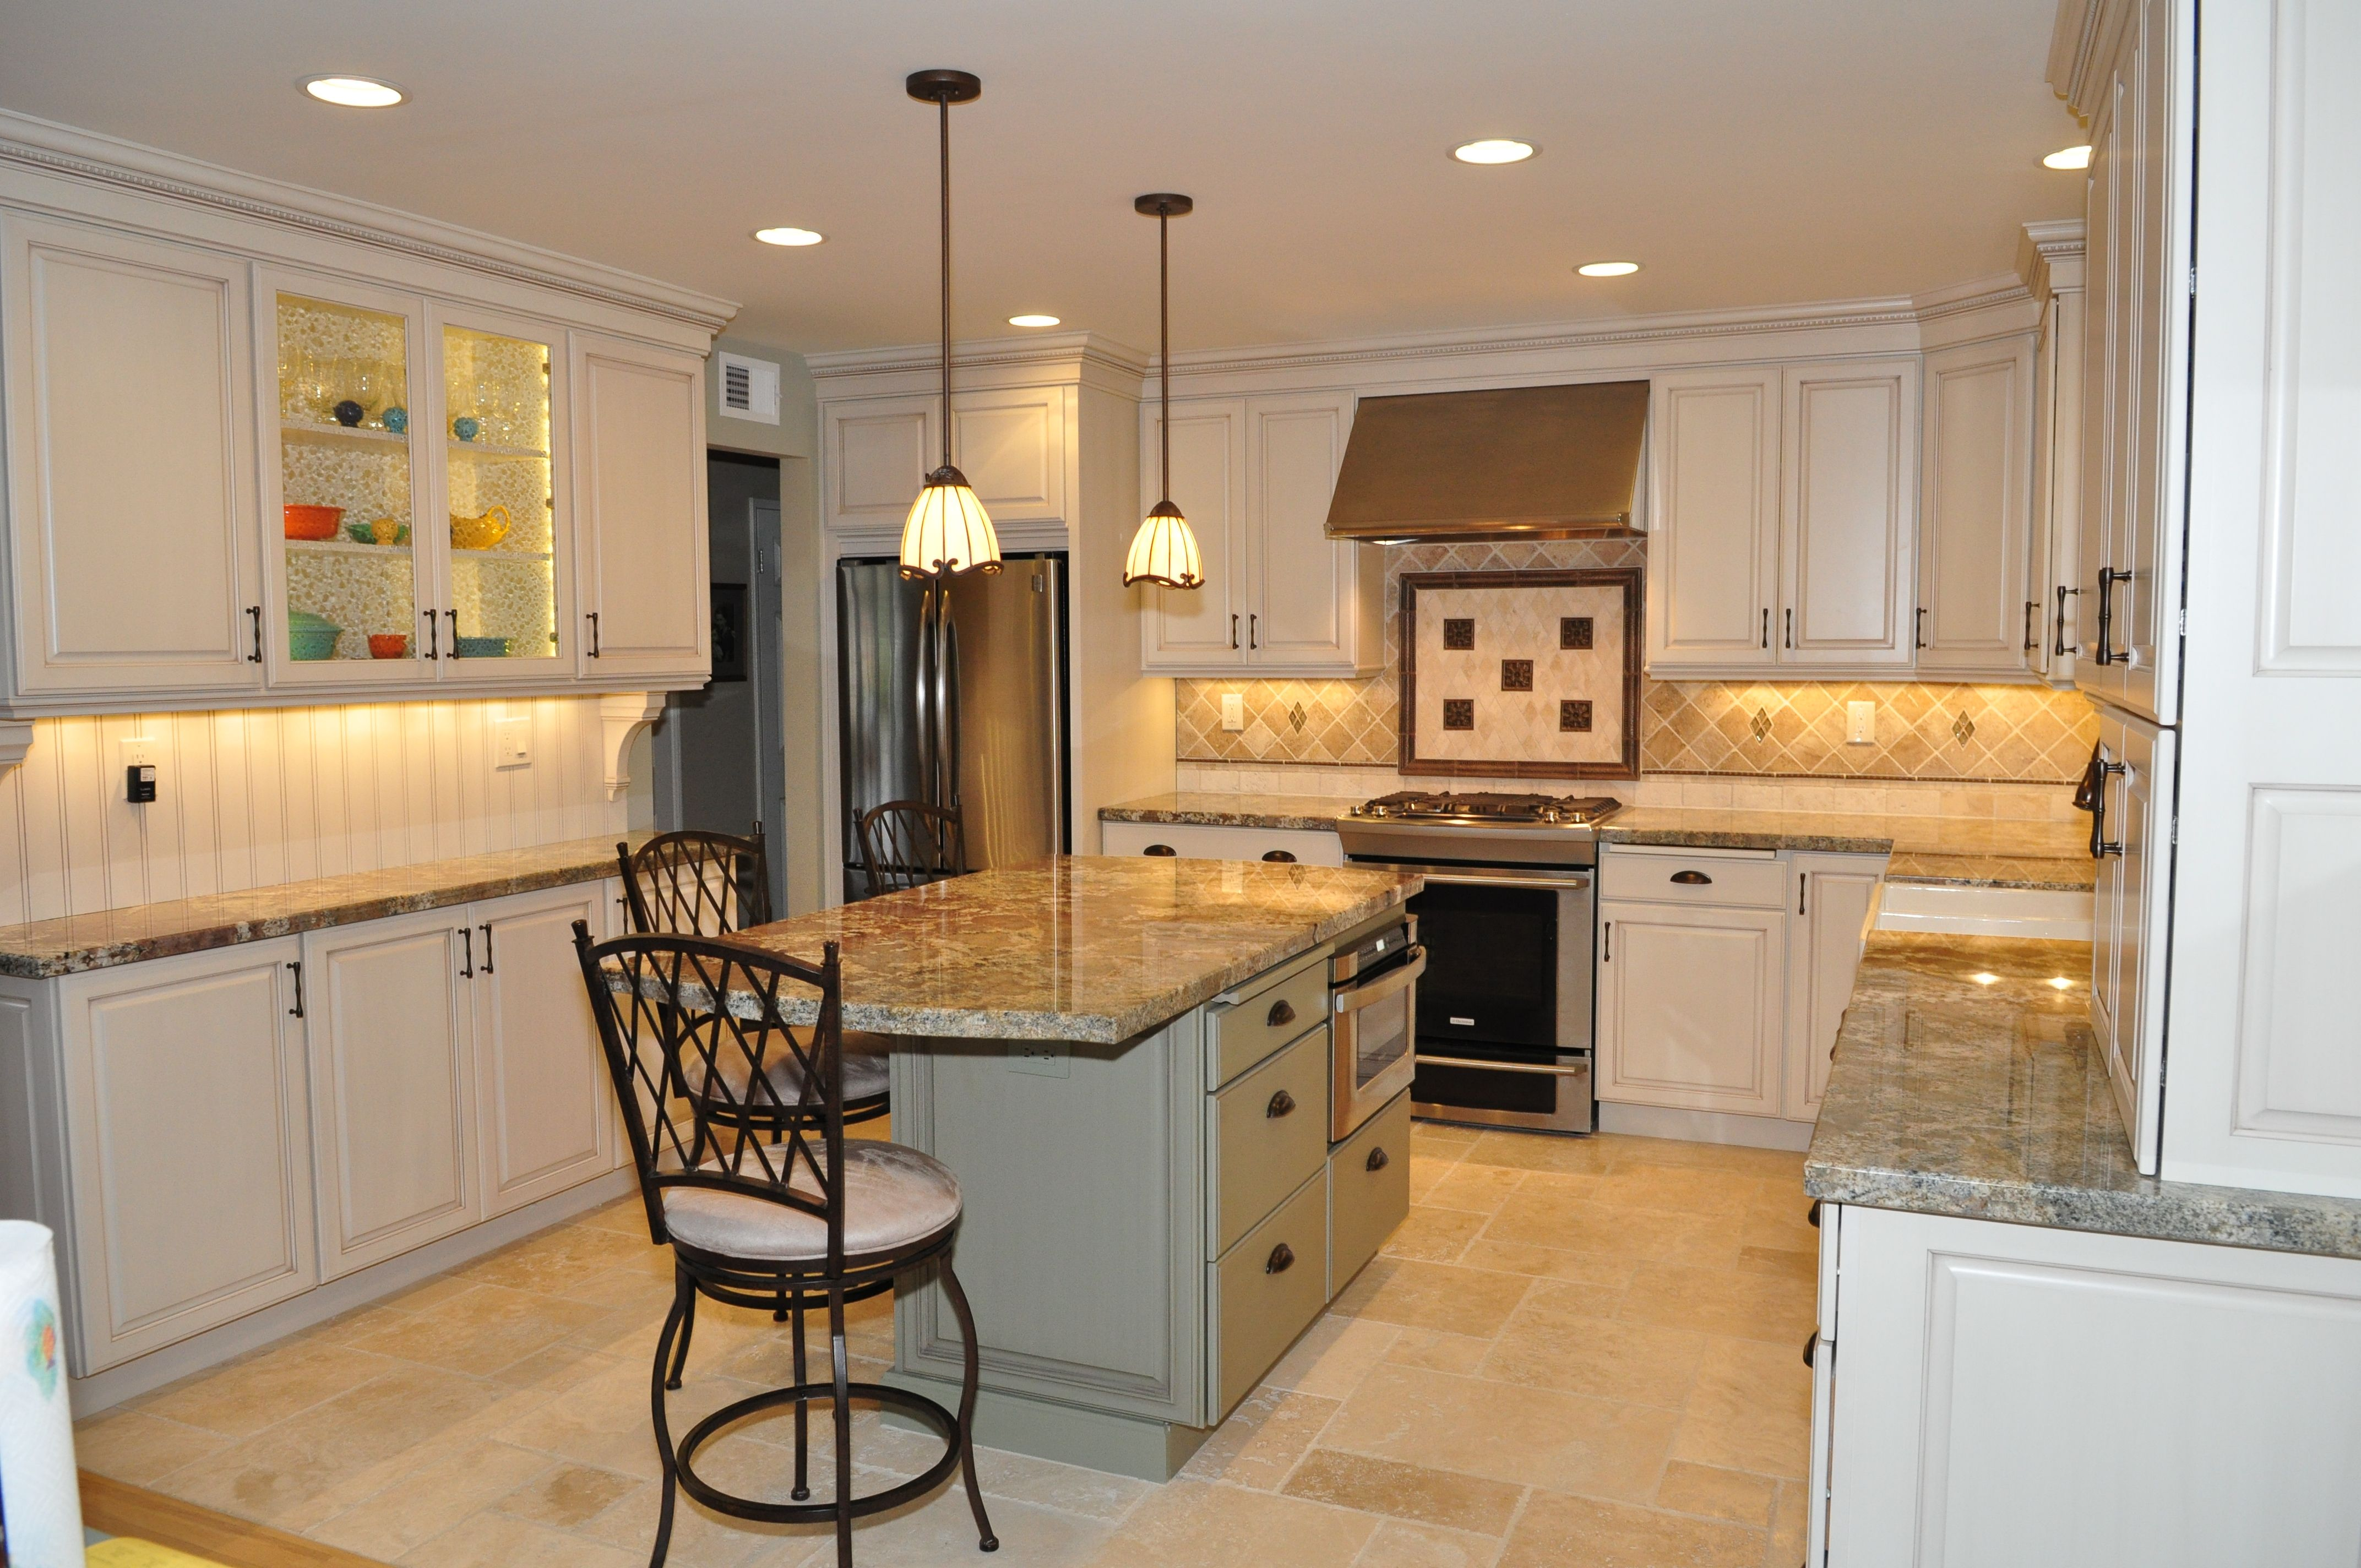 Dynasty By Omega Cabinetry For The Perimeter Of The Kitchen In Brookside Square Door Style Maple With Opaque Wood In Oy Kitchen Design Kitchen Kitchen Remodel